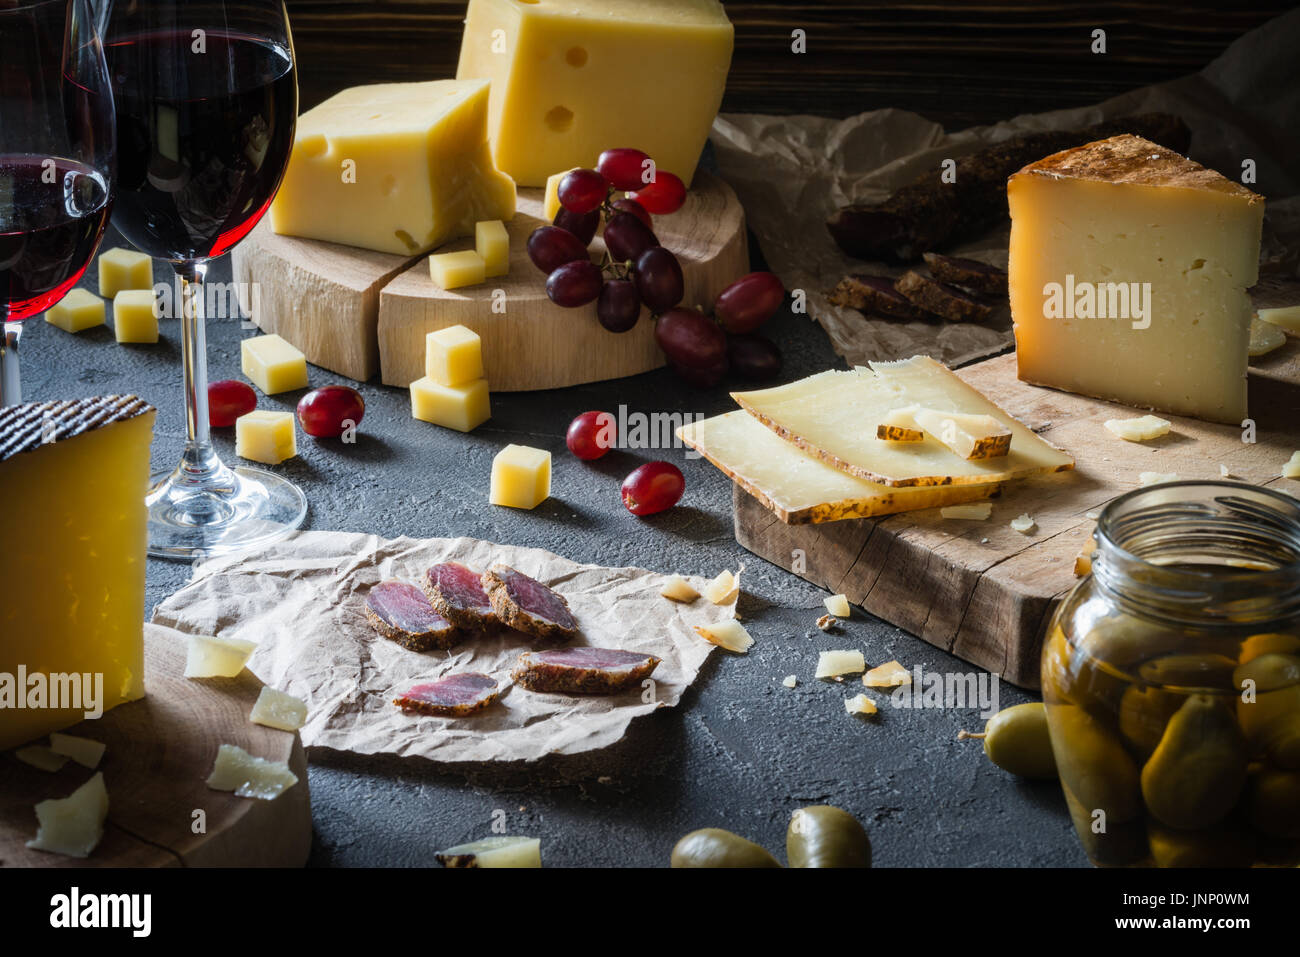 Cheese platter of chopped hard cheeses (Swedish, Spanish manchego) and sliced Italian pecorino toscano on wooden boards, with green olives in glass ja - Stock Image